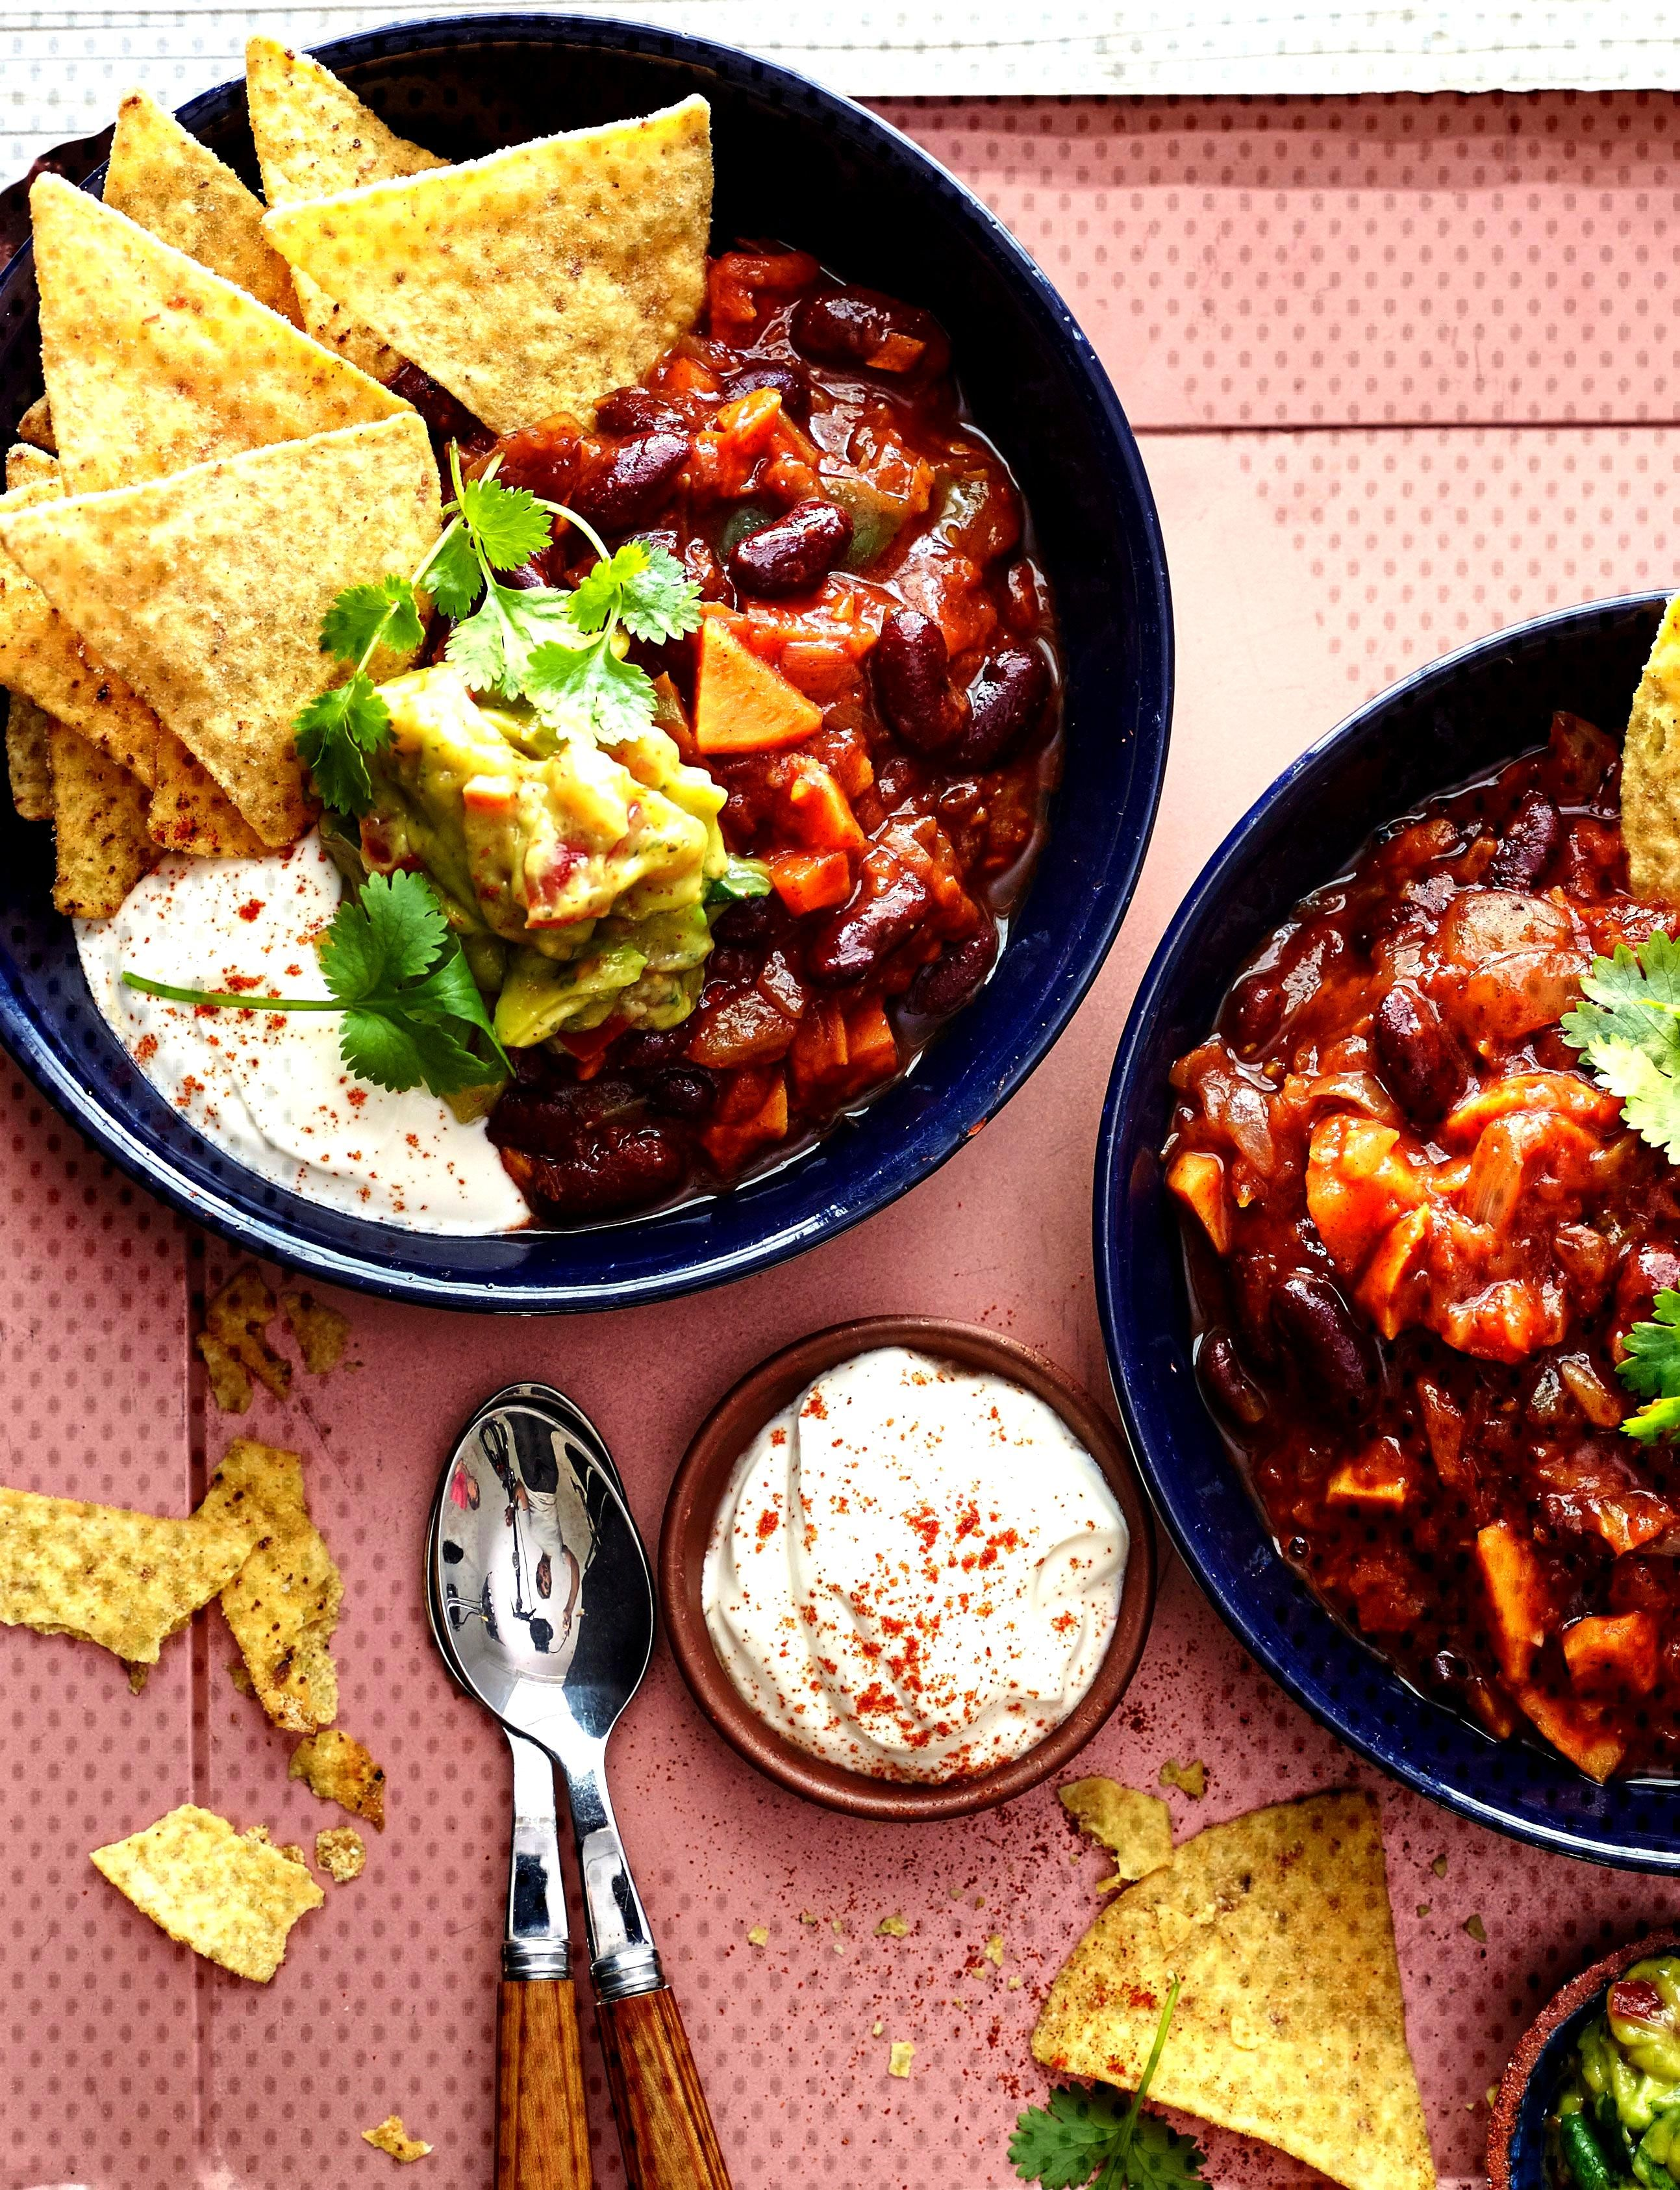 Big bowl veggie chilli - packed full of yummy superfoods like red kidney beans, avocado, tomatoes a